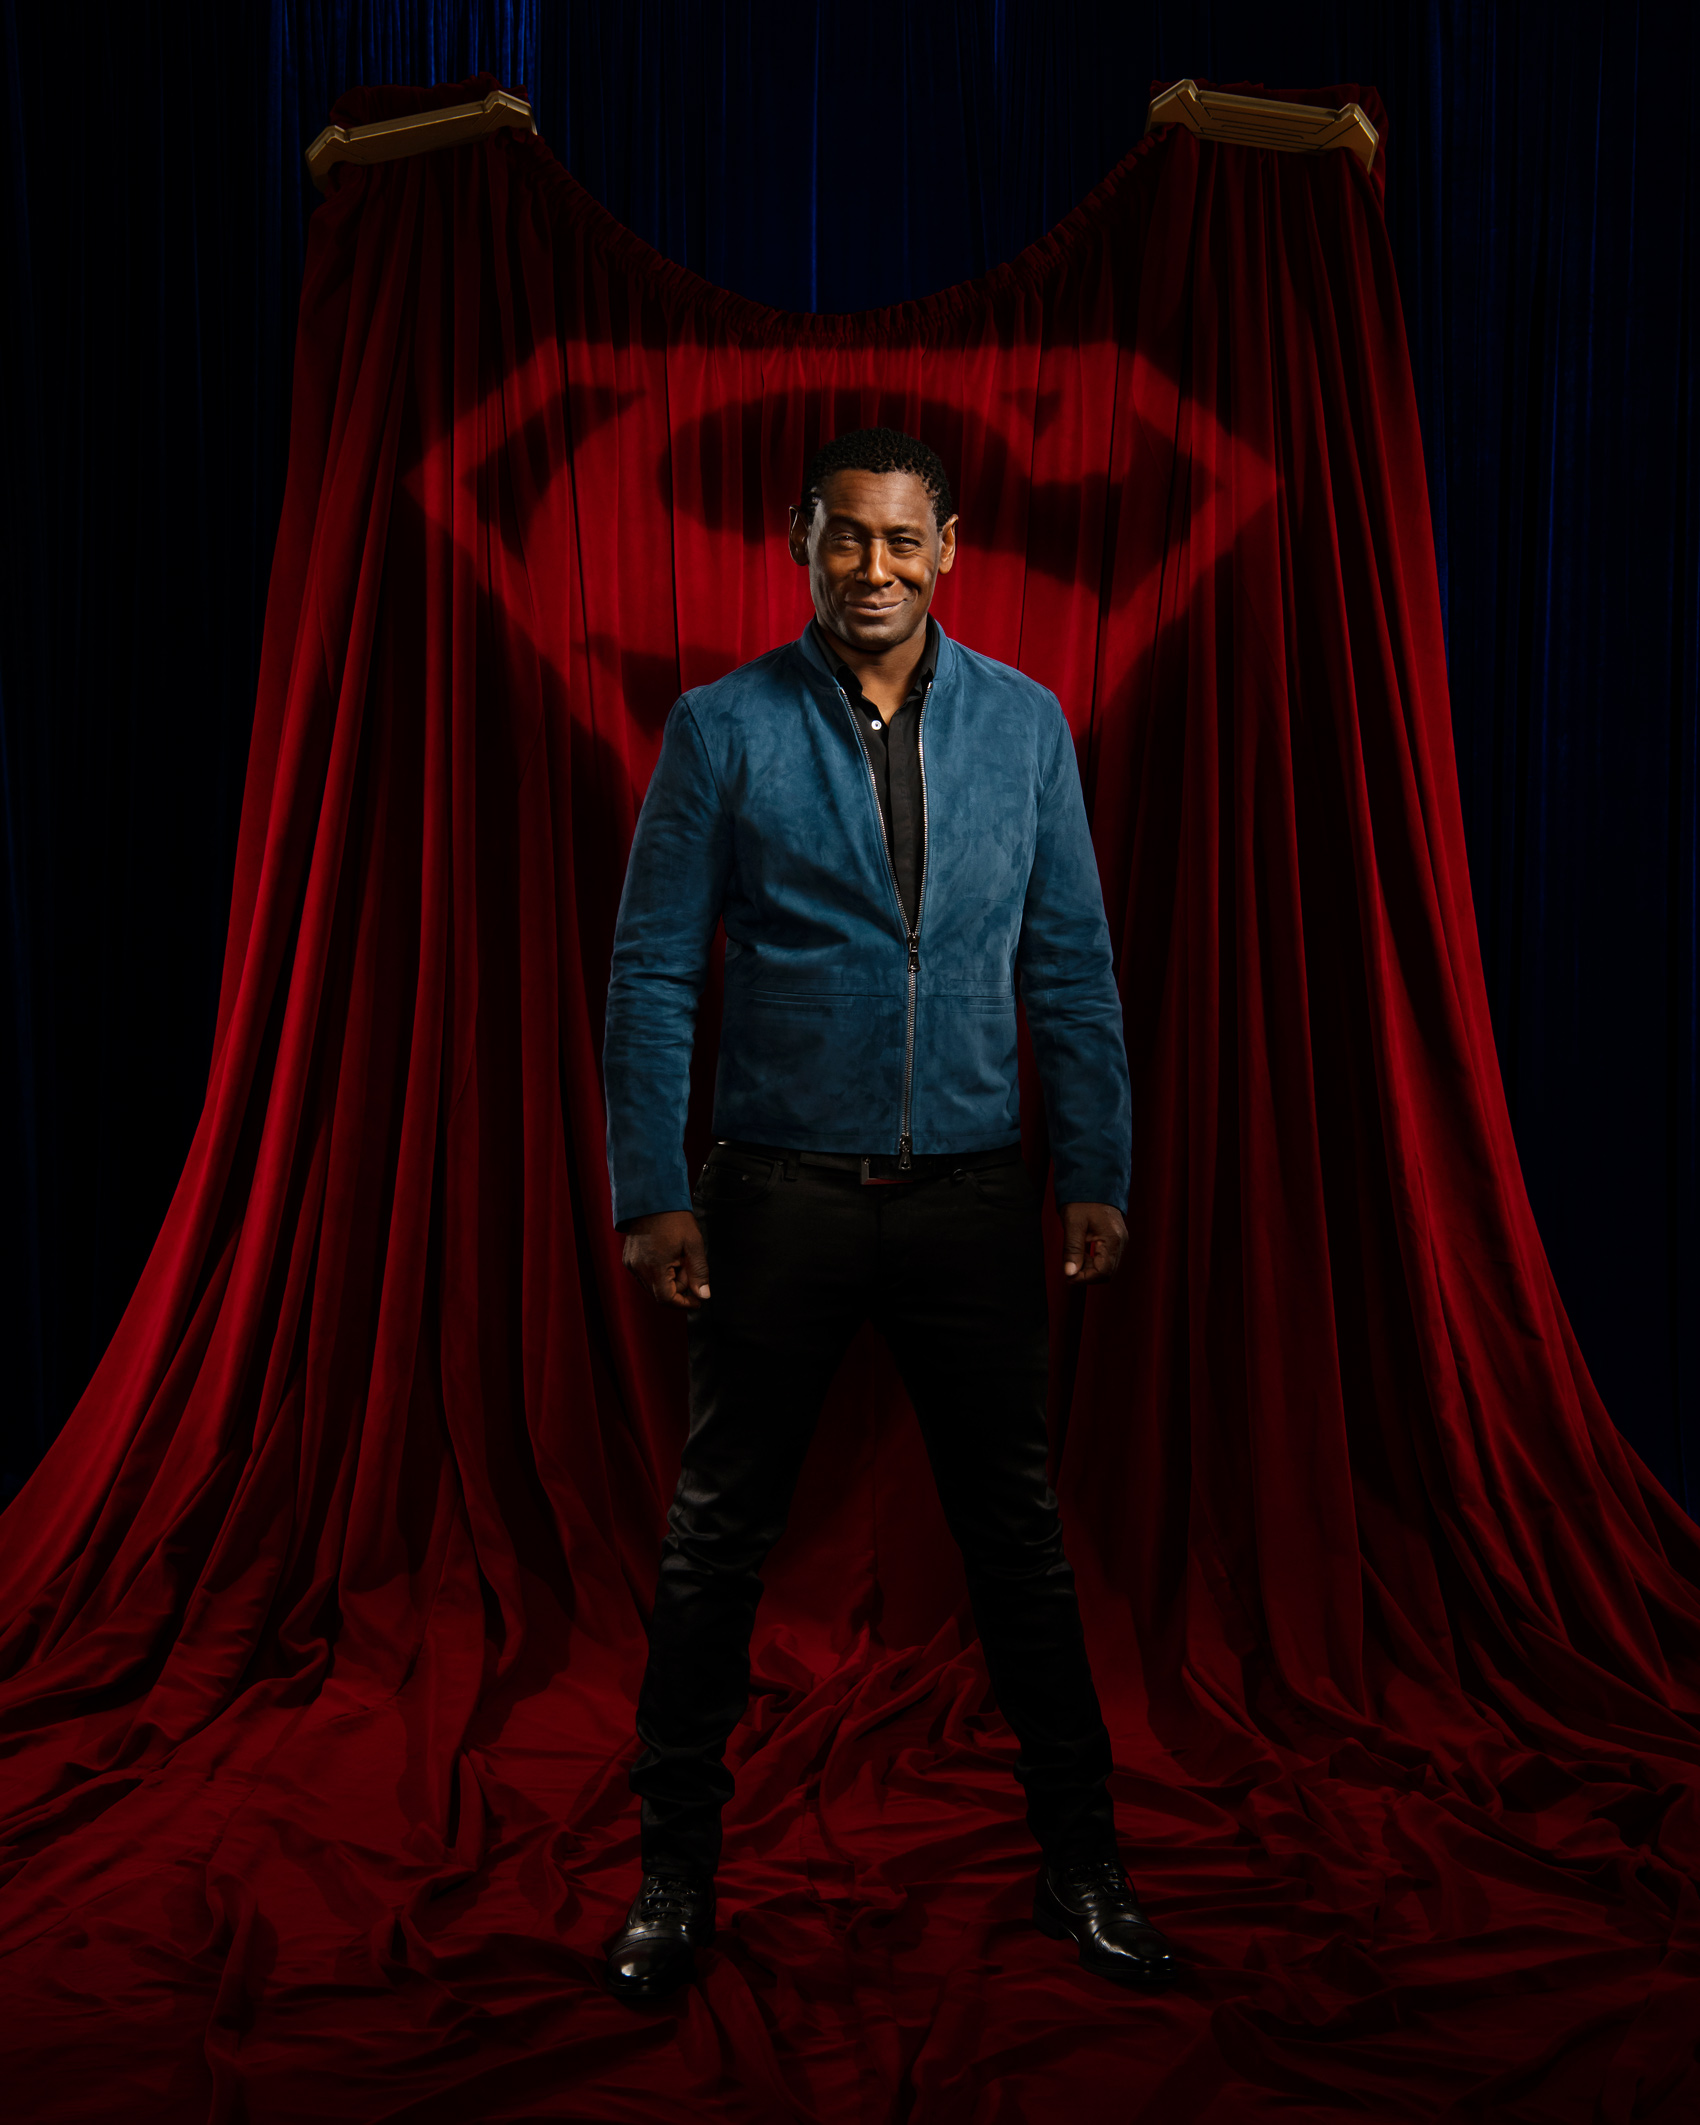 2020-Vancouver-Celebrity-Photographer-ErichSaide-Supergirl-DavidHarewood-WarnerBros